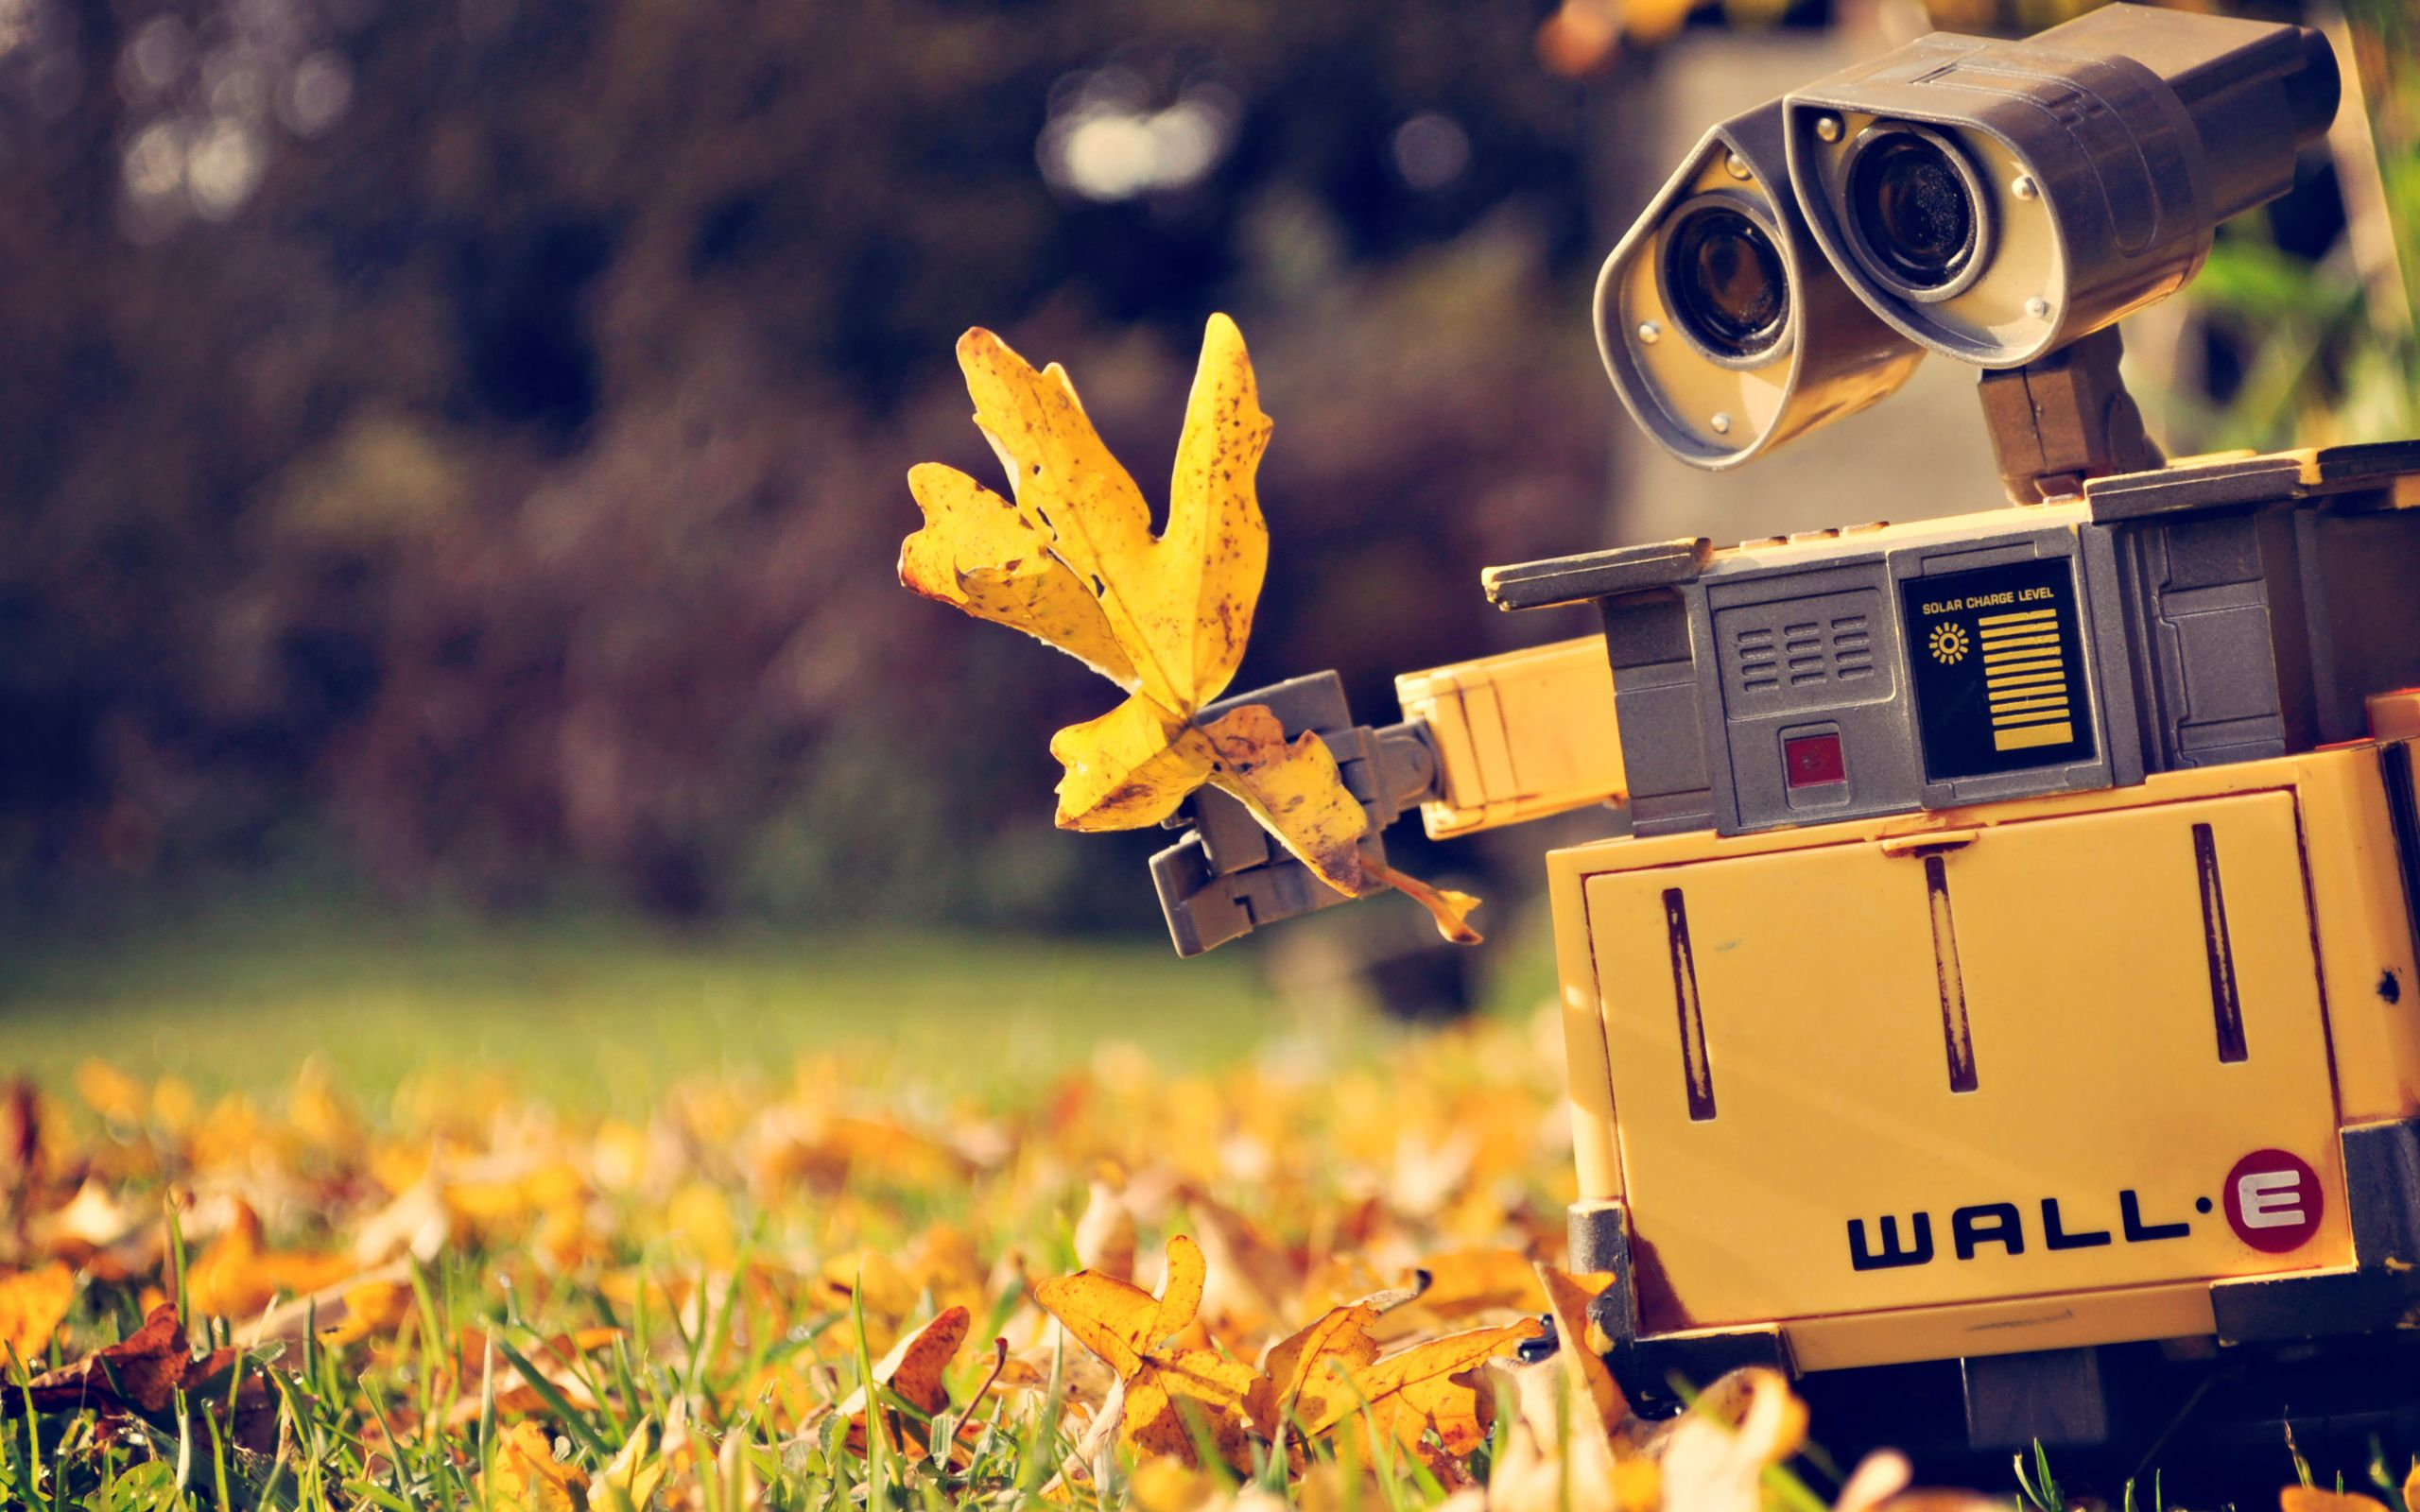 walle wall paper